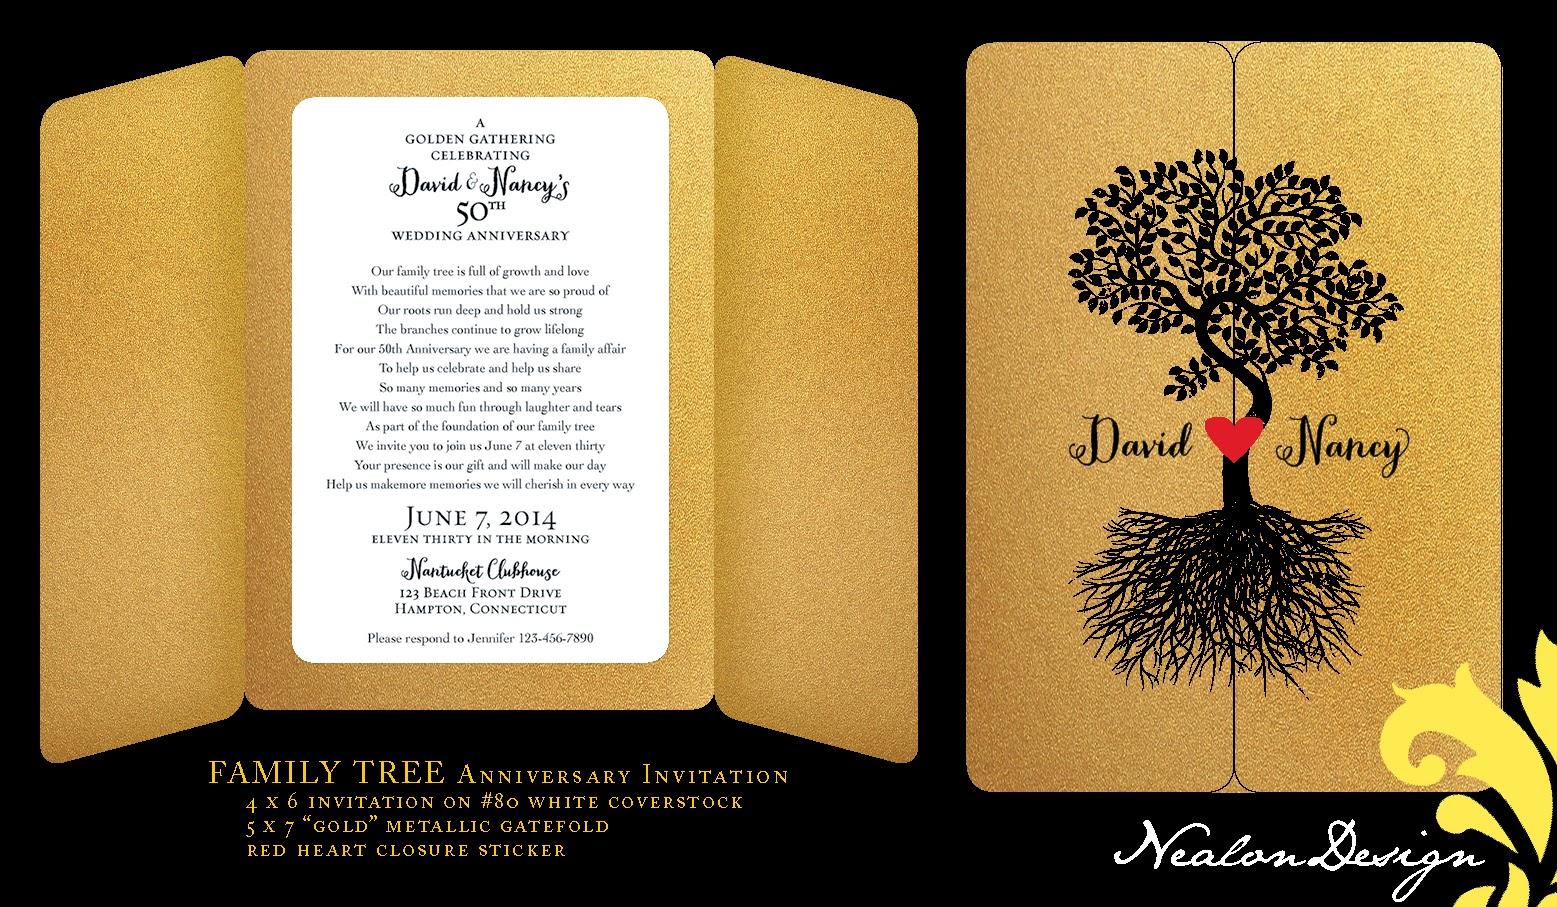 Nealon design family tree anniversary invitation family tree anniversary invitation stopboris